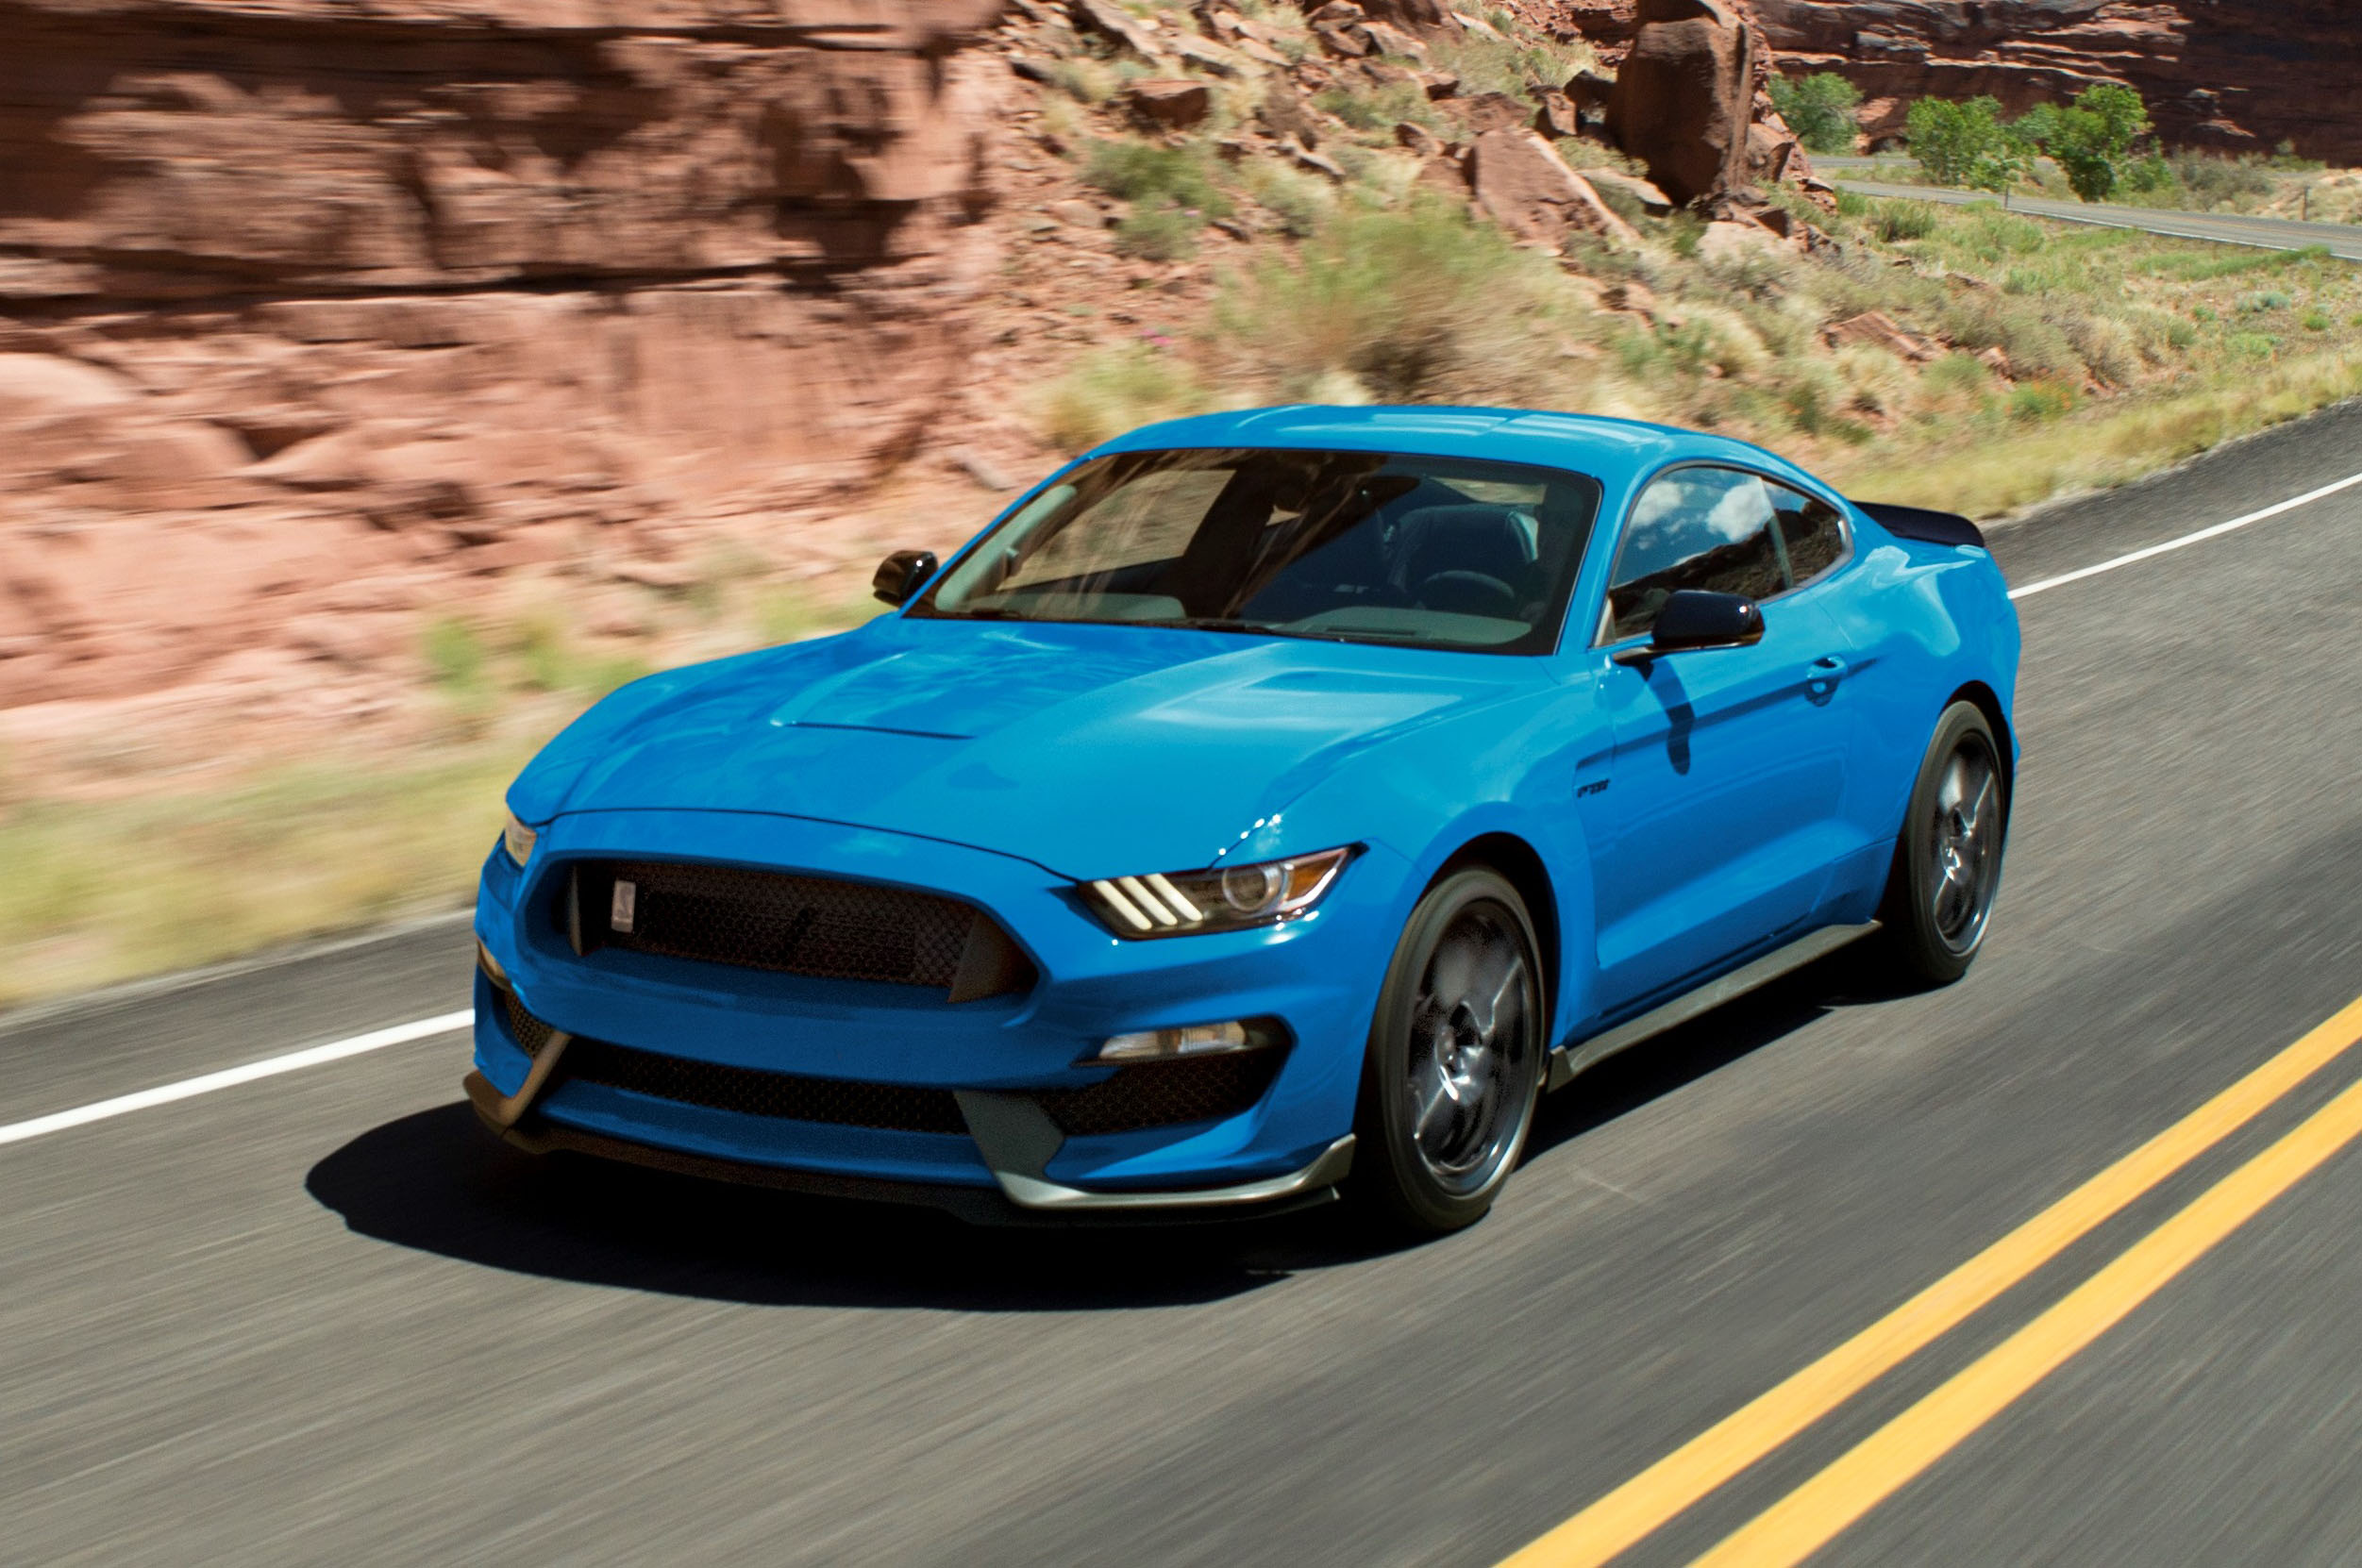 Ford Shelby Gt350r Interior >> Ford Shelby GT350 Mustang continúa para el año modelo 2018 ...